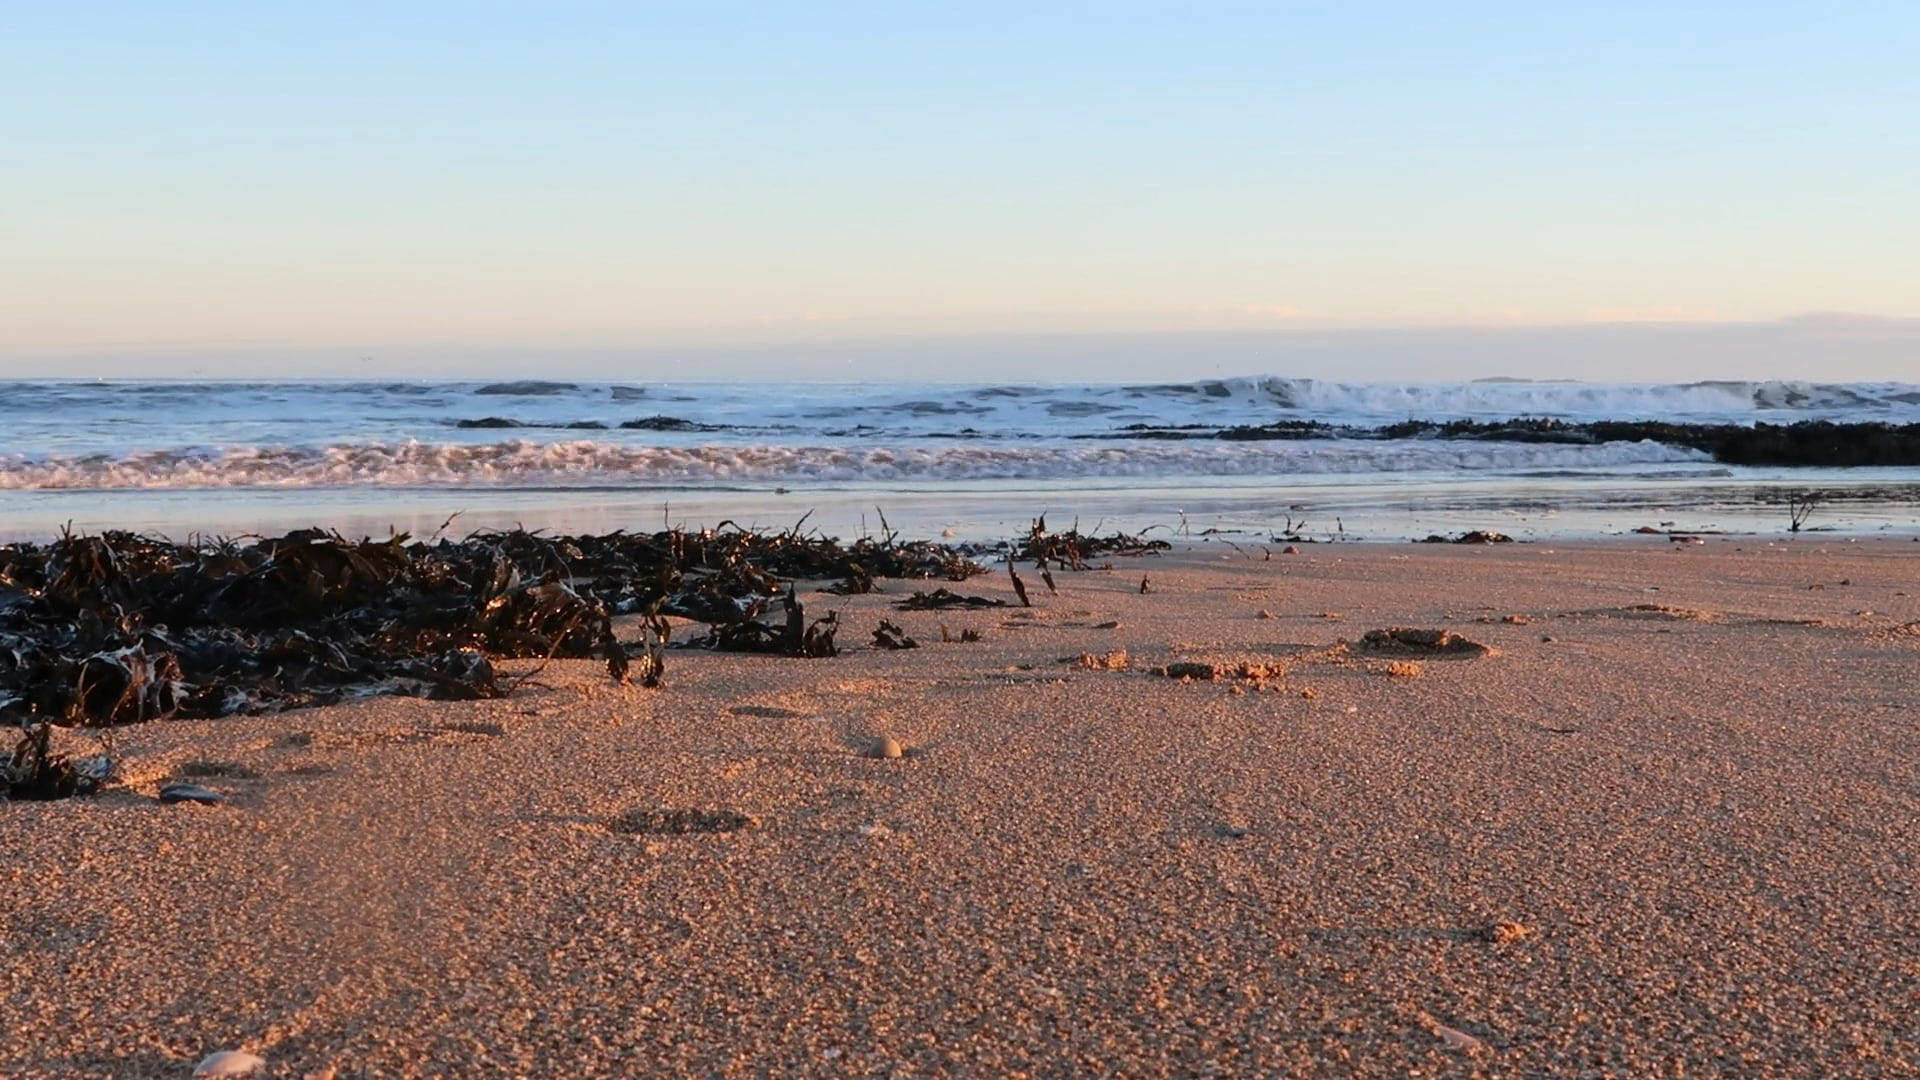 View Of Sea With Seaweeds On Shore